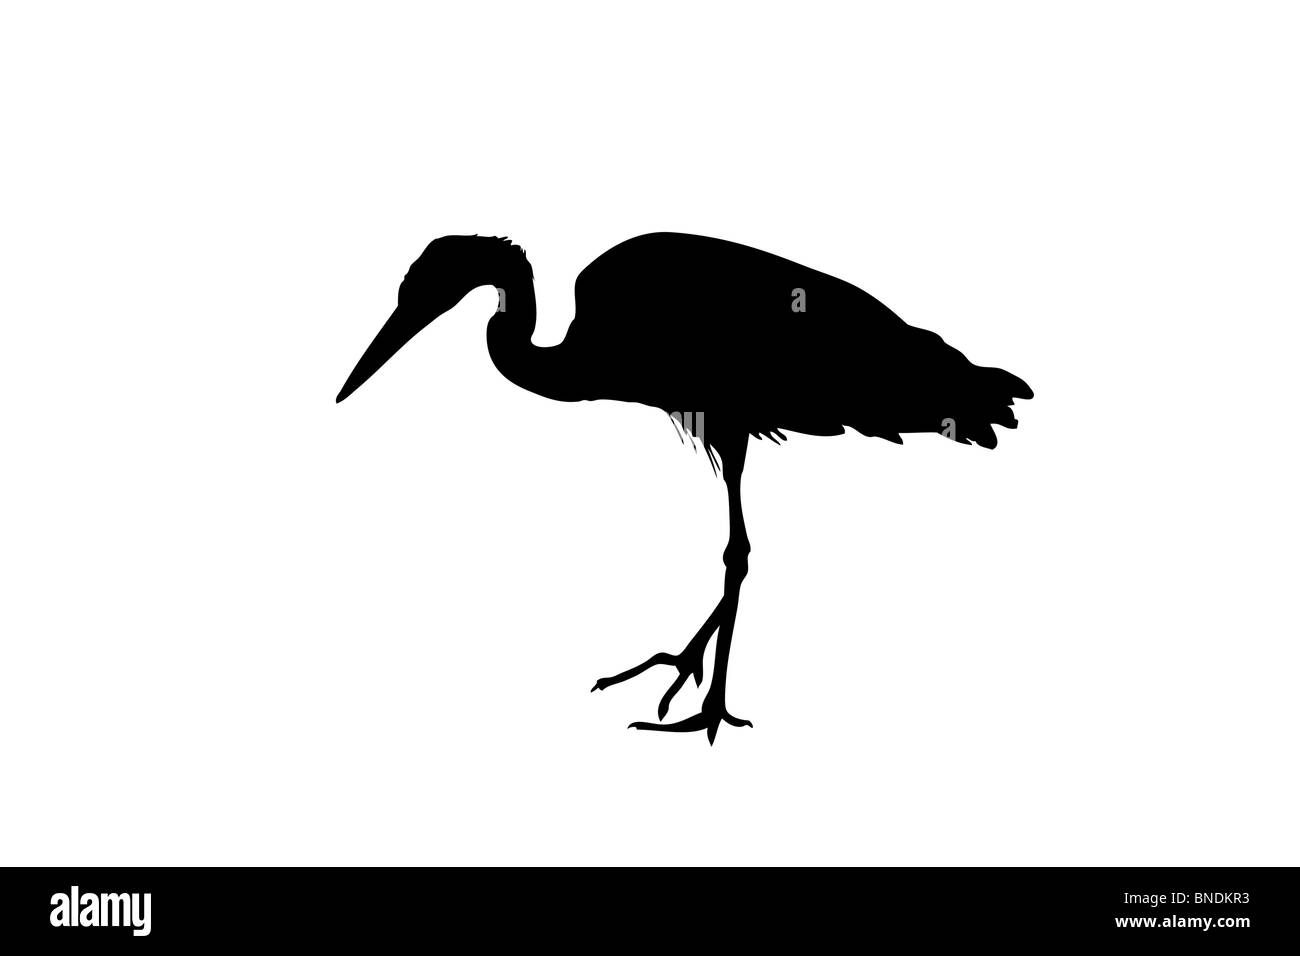 A silhouette of a heron - Stock Image